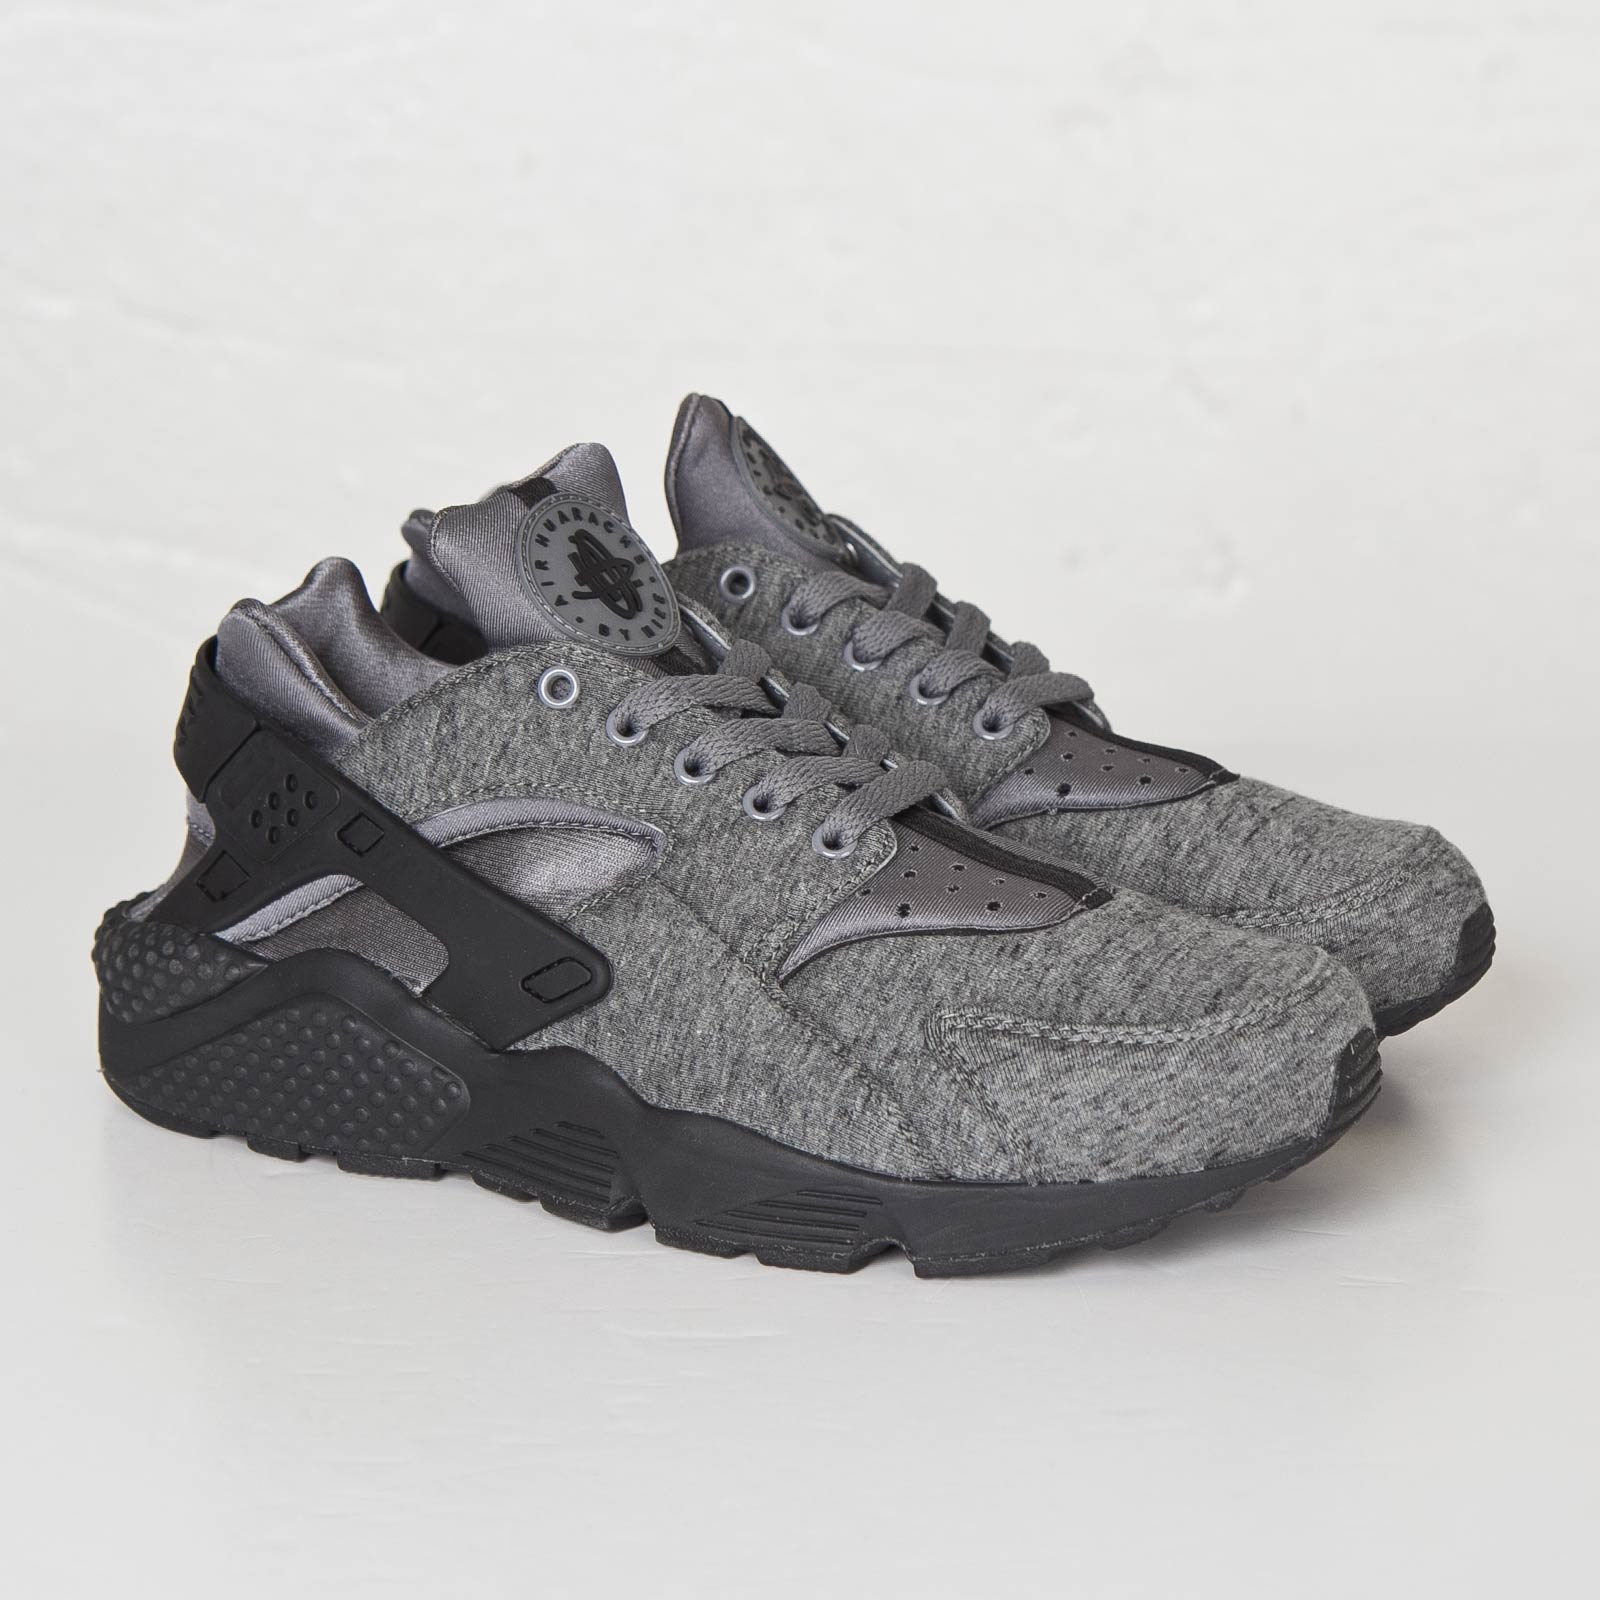 reputable site ac0af 6b730 Nike Air Huarache Run Fleece